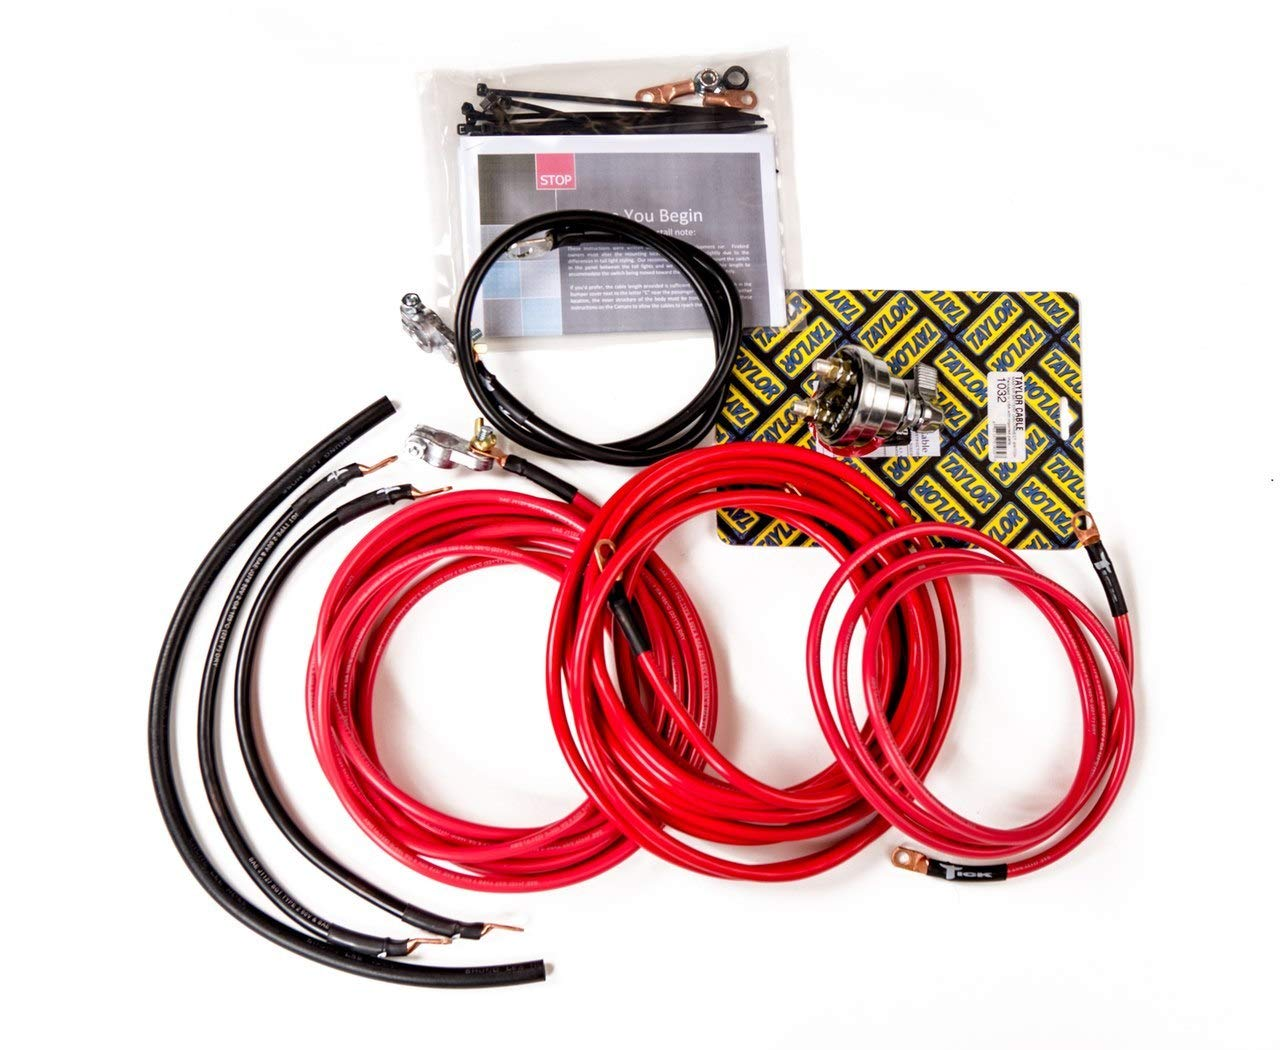 Battery Relocation Kit for 98-02 Camaro & Firebird LS1 by 269 Motorsports